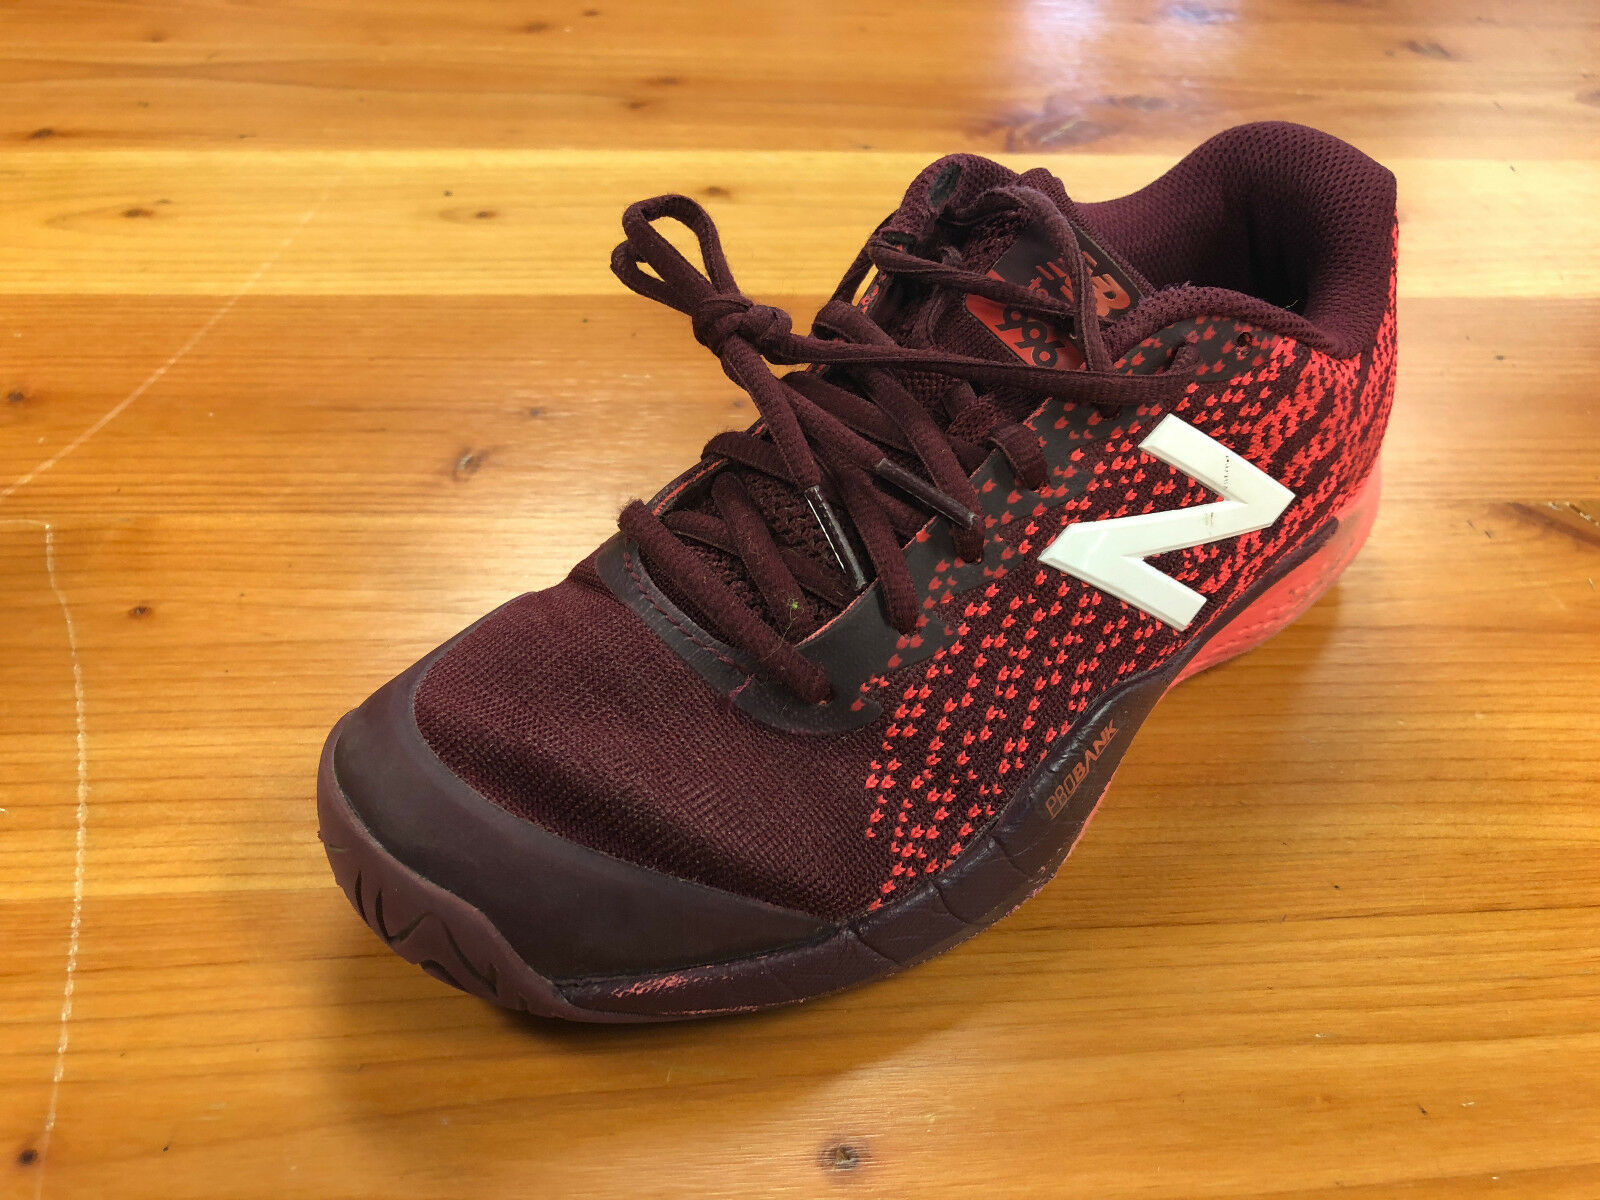 Women's New Balance Flare Preowned Shoe Size 7.5